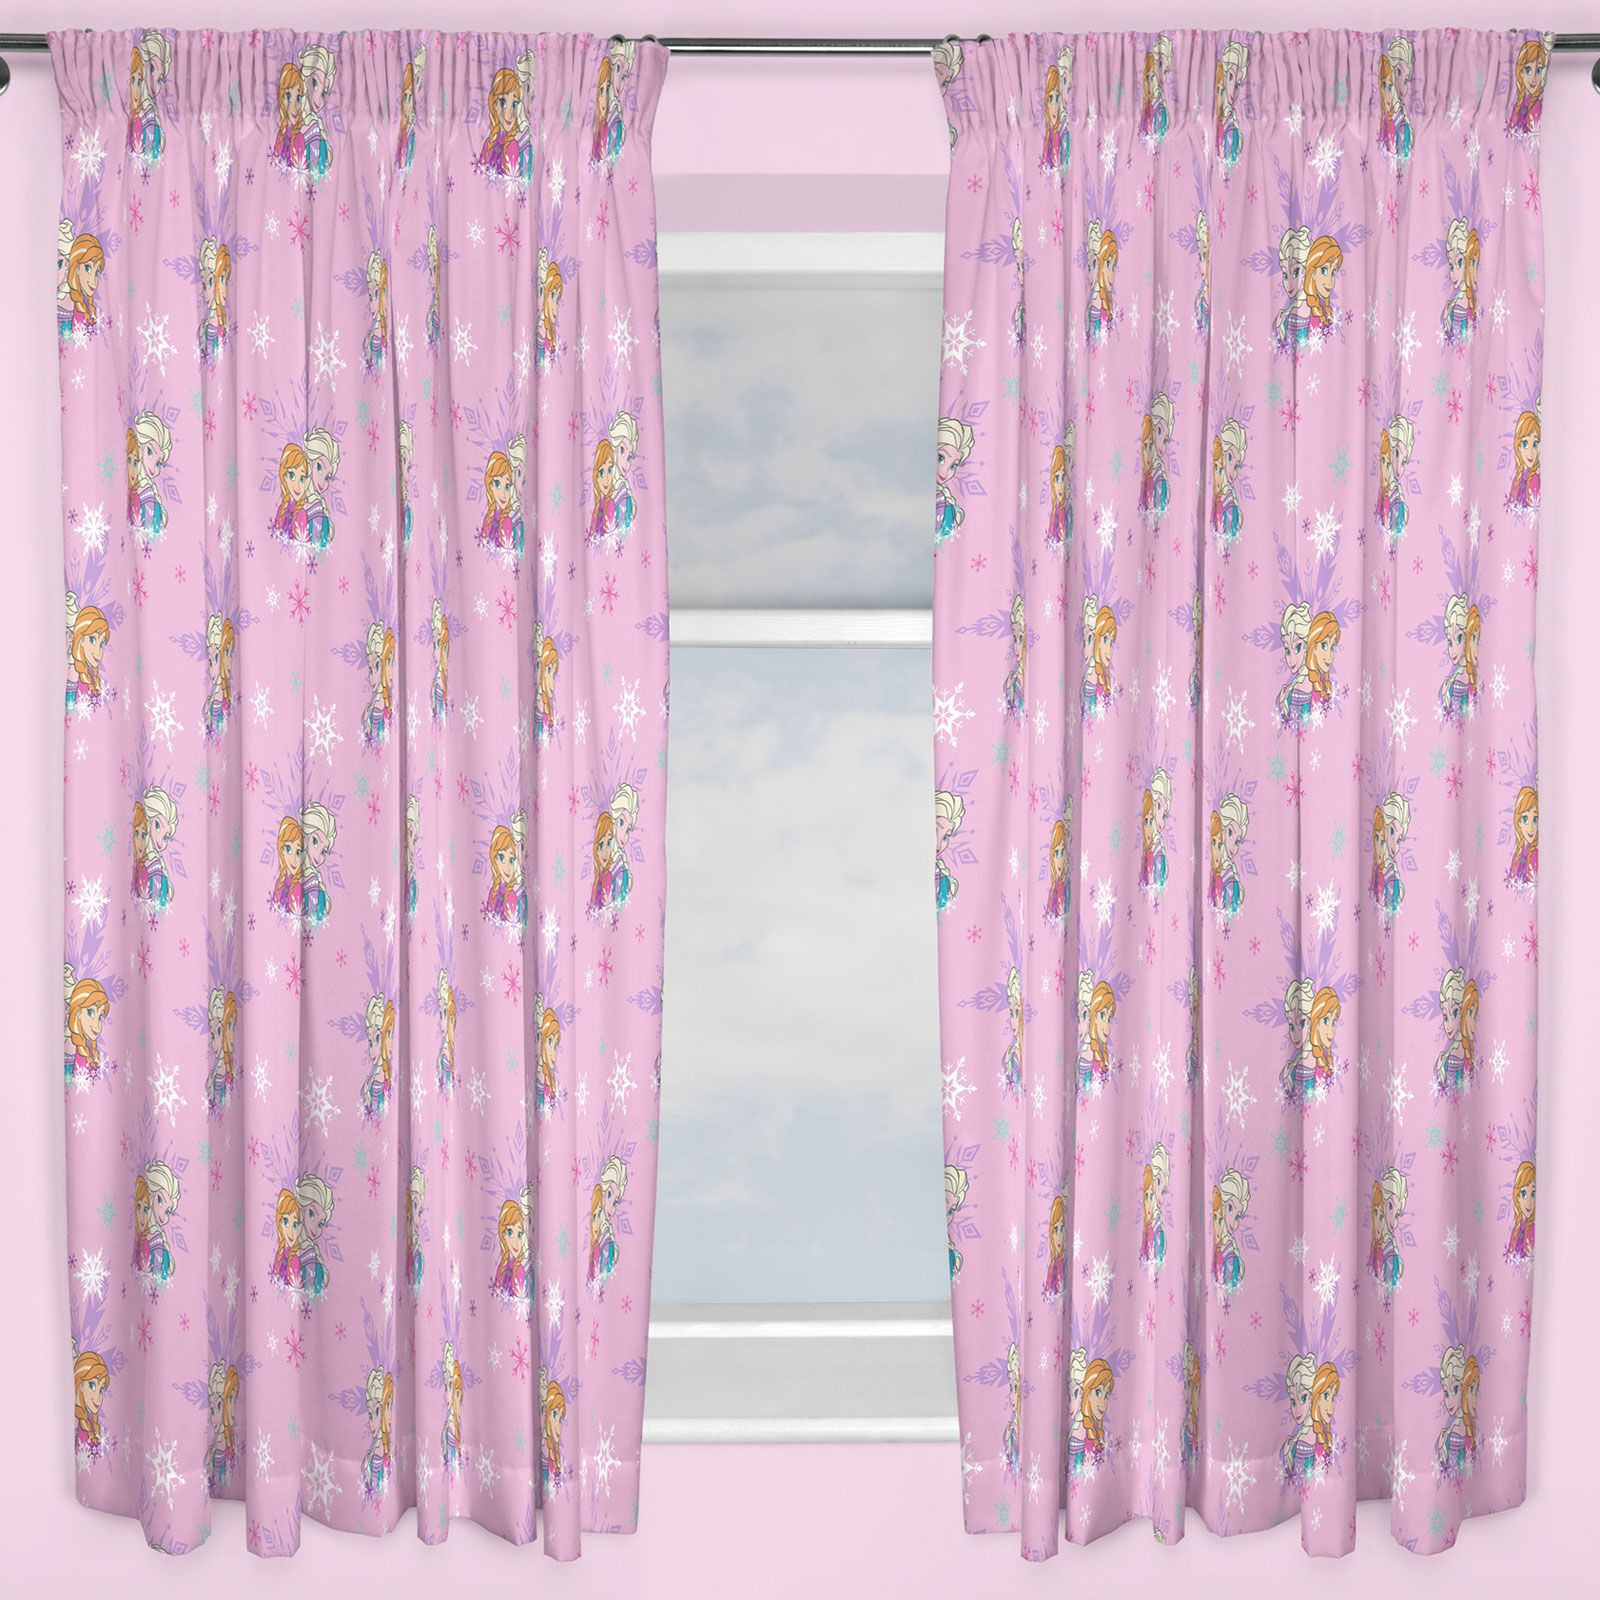 m on b lined border fully x to curtains pleated curtain eyelet products napoli click enlarge image